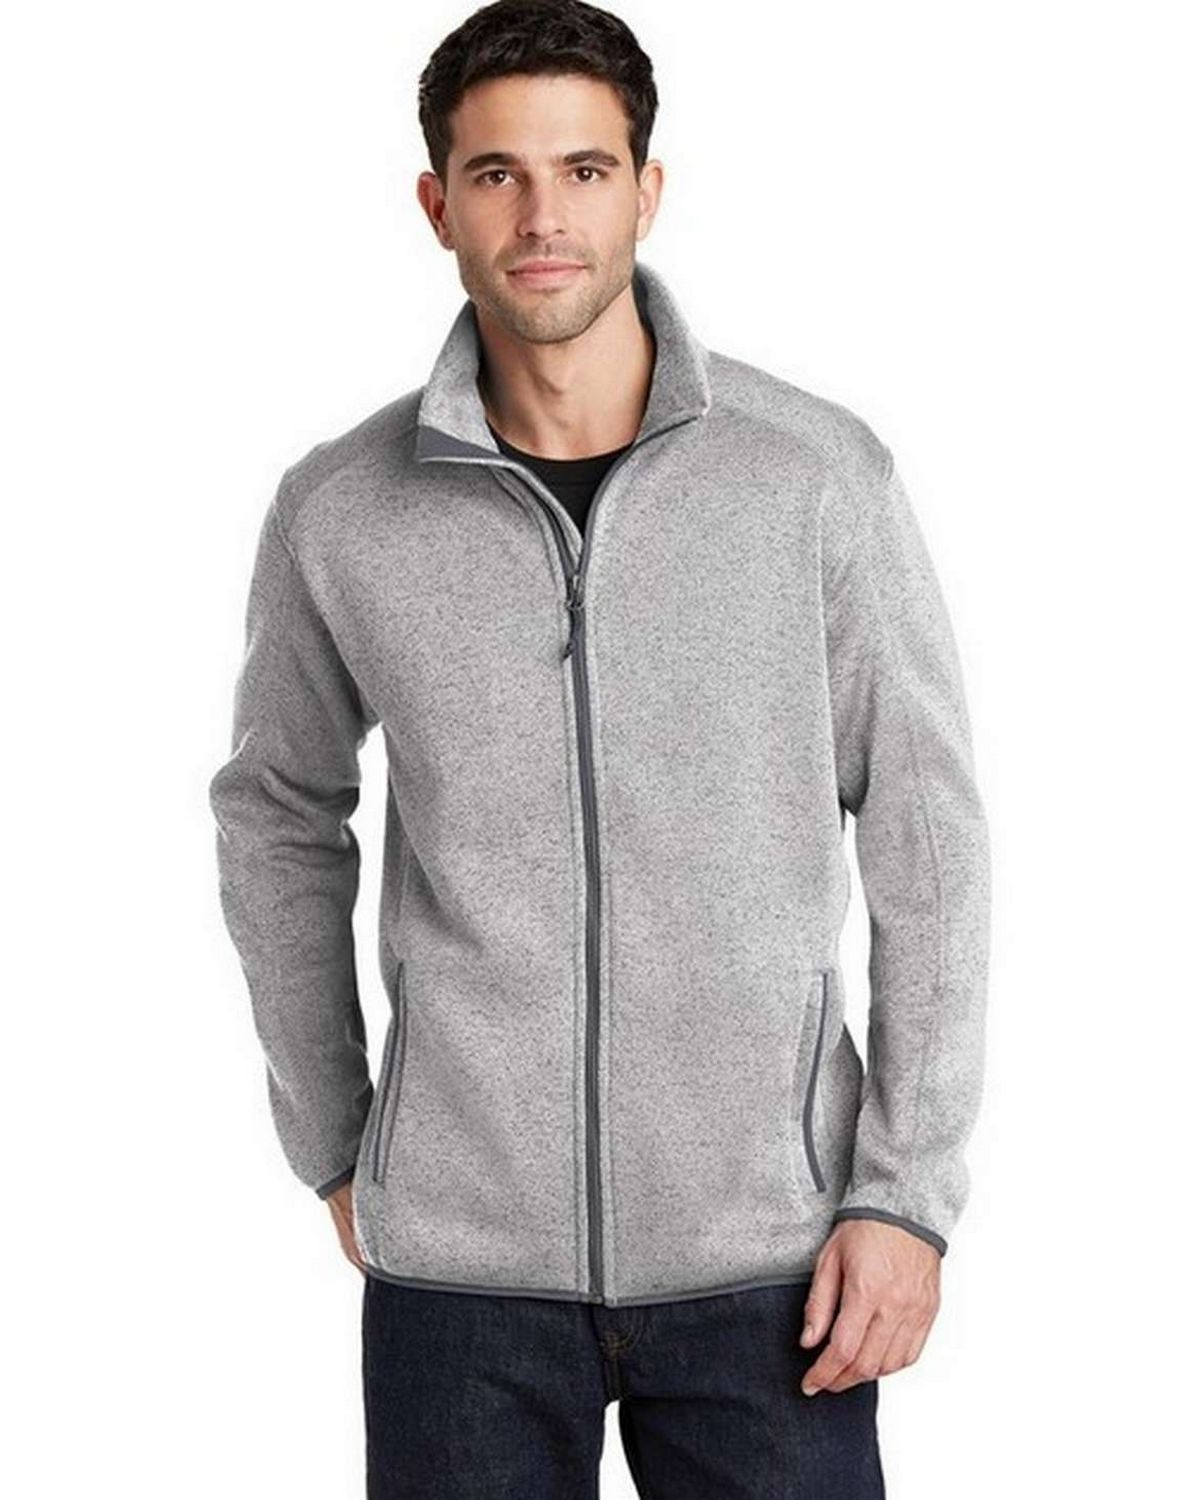 Port Authority F232 Sweater Fleece Jacket